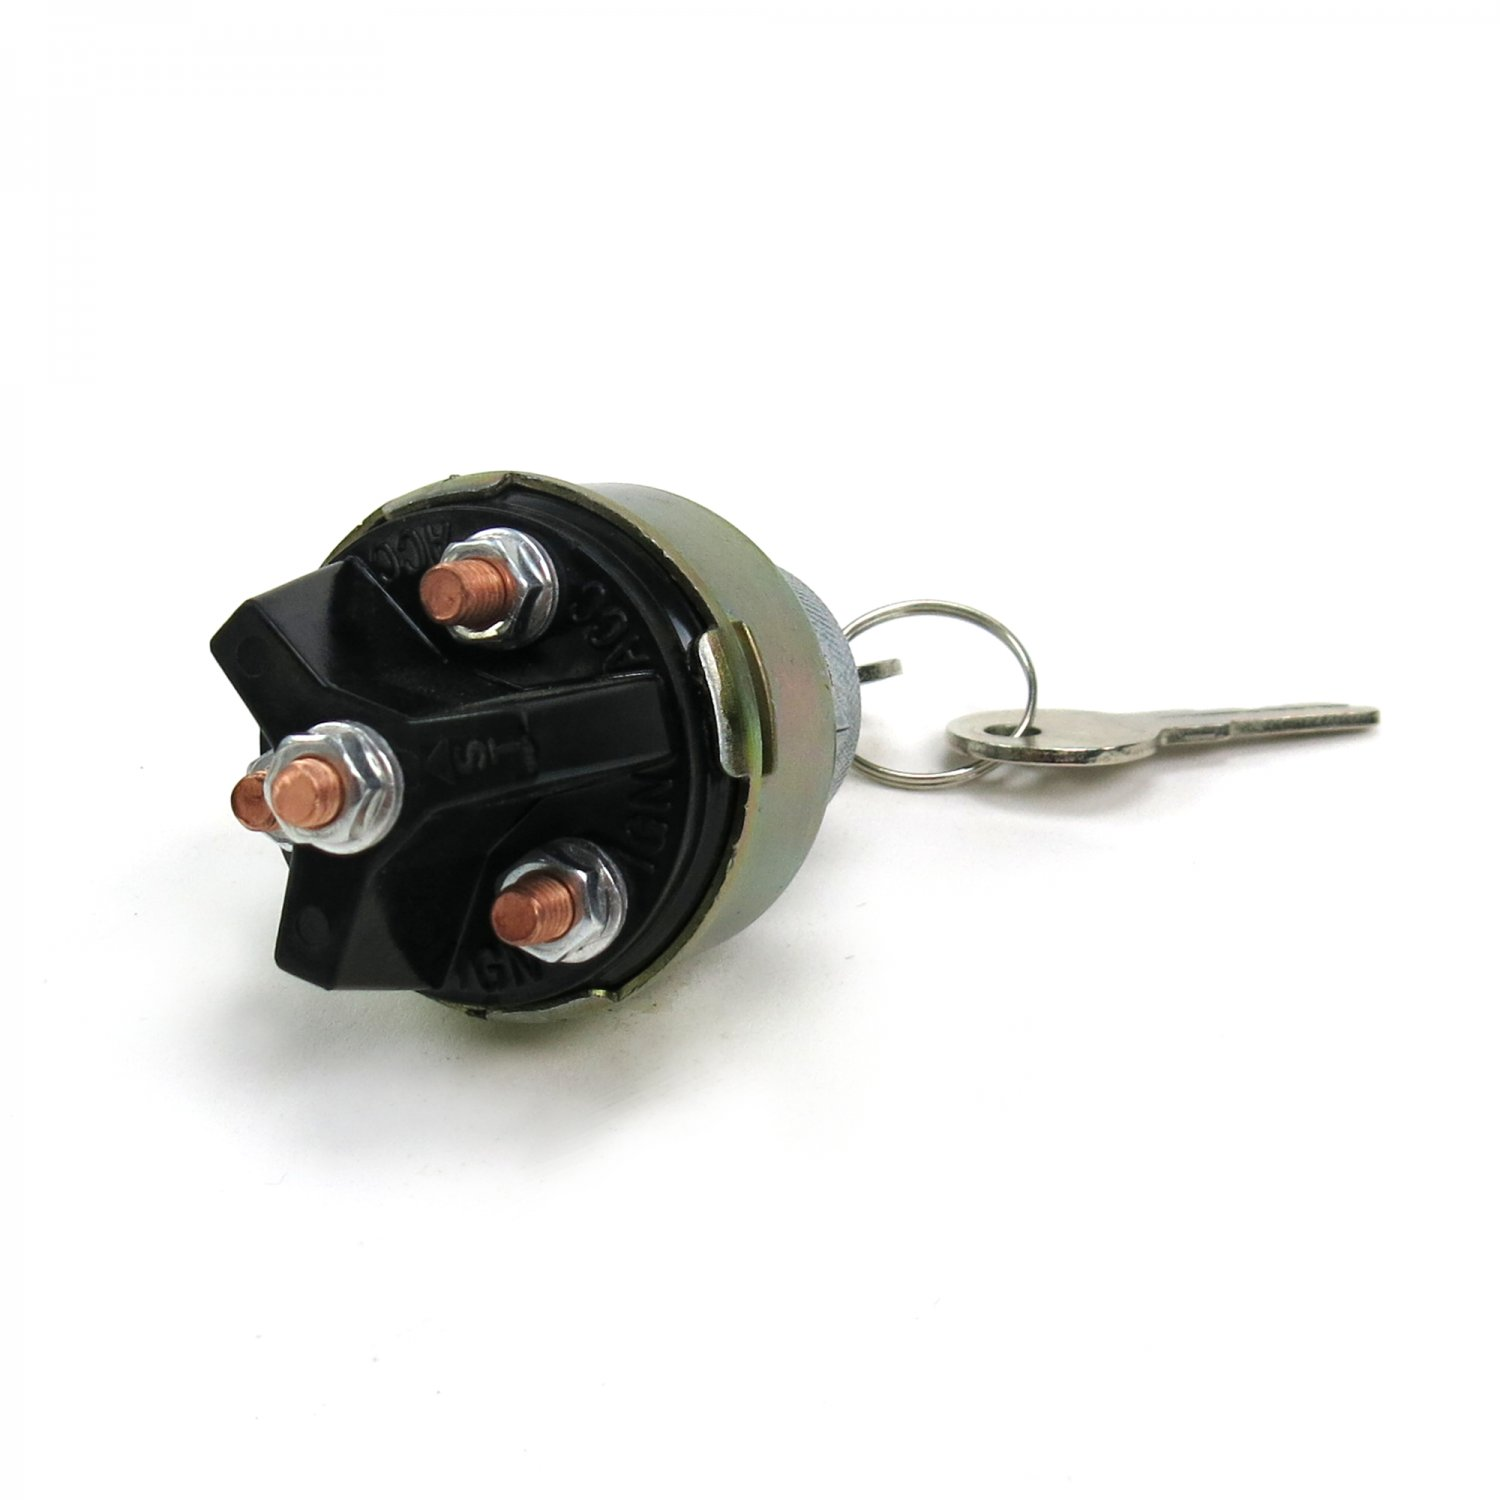 Tractor Trailer Keys : Ignition switch with keys universal for car tractor